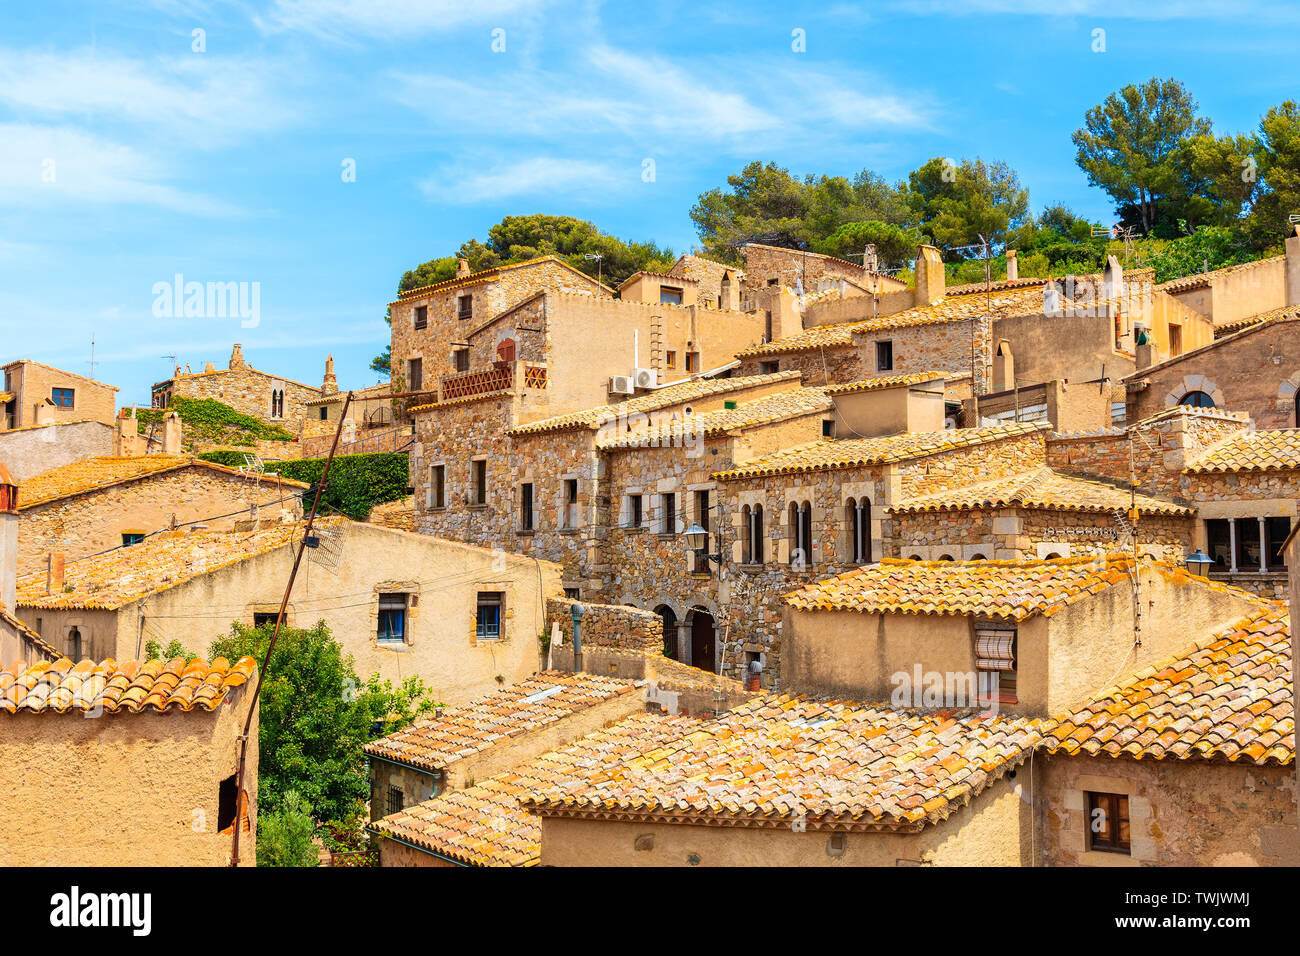 Stone houses with orange tile roofs in old town of Tossa de Mar, Costa Brava, Spain Stock Photo